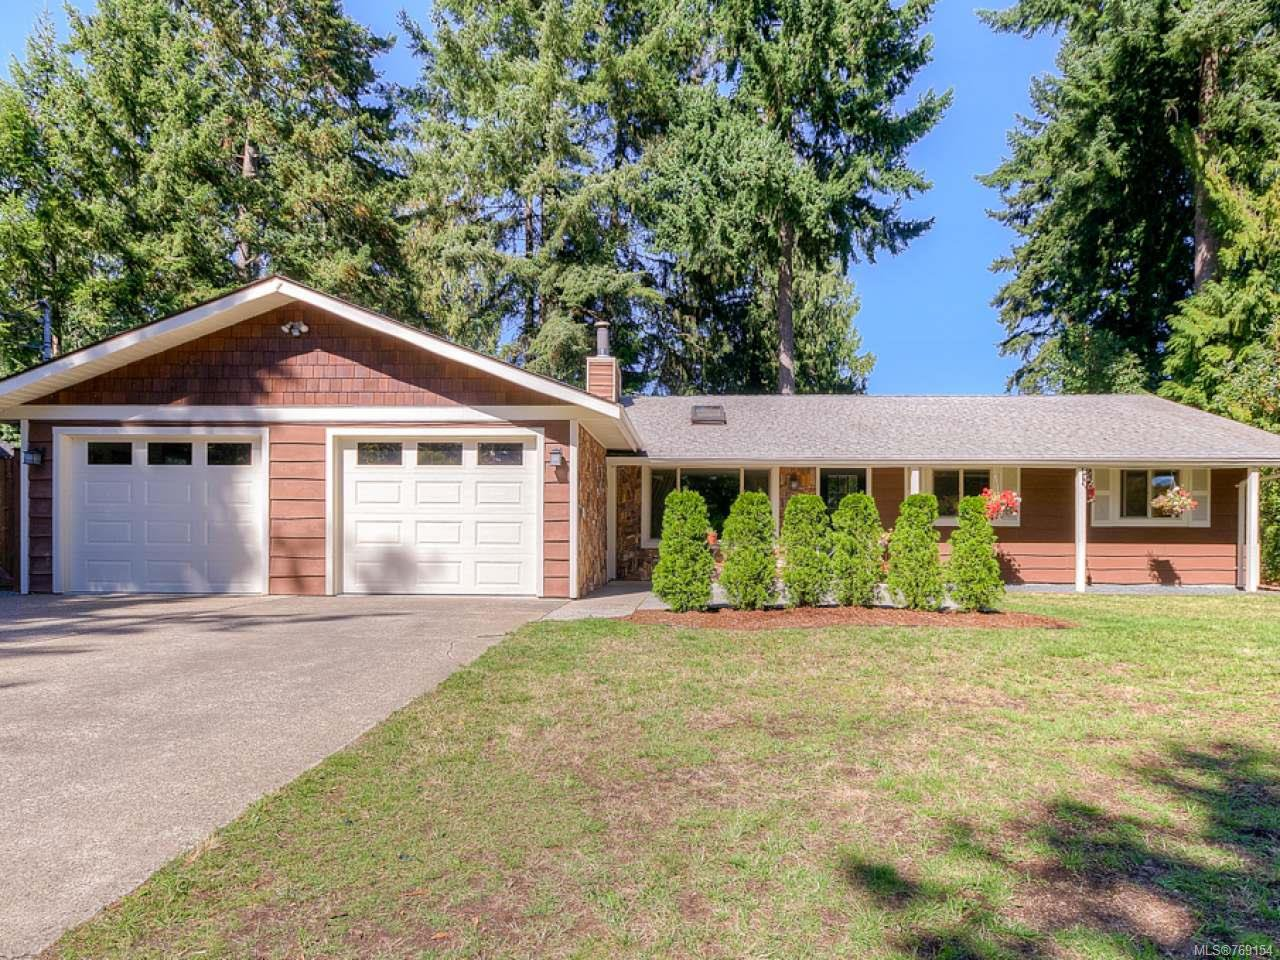 Main Photo: 1825 Amelia Cres in NANOOSE BAY: PQ Nanoose House for sale (Parksville/Qualicum)  : MLS®# 769154